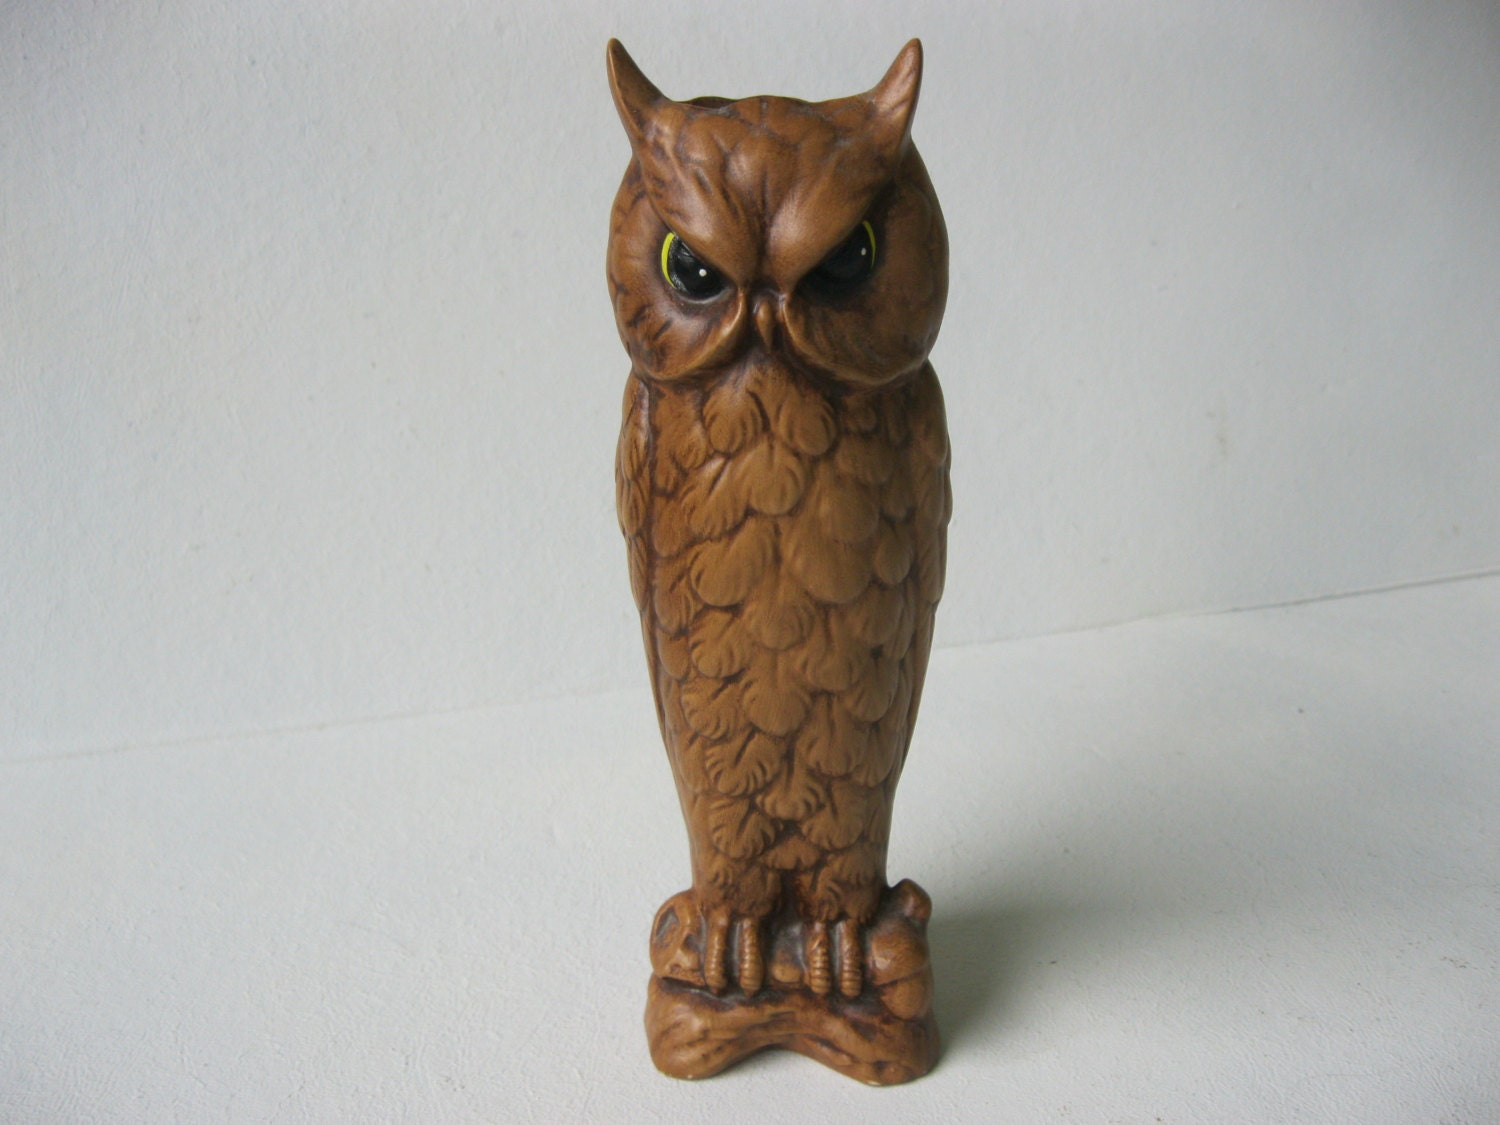 Vintage Tall and Slim Owl Vase or Home Decor